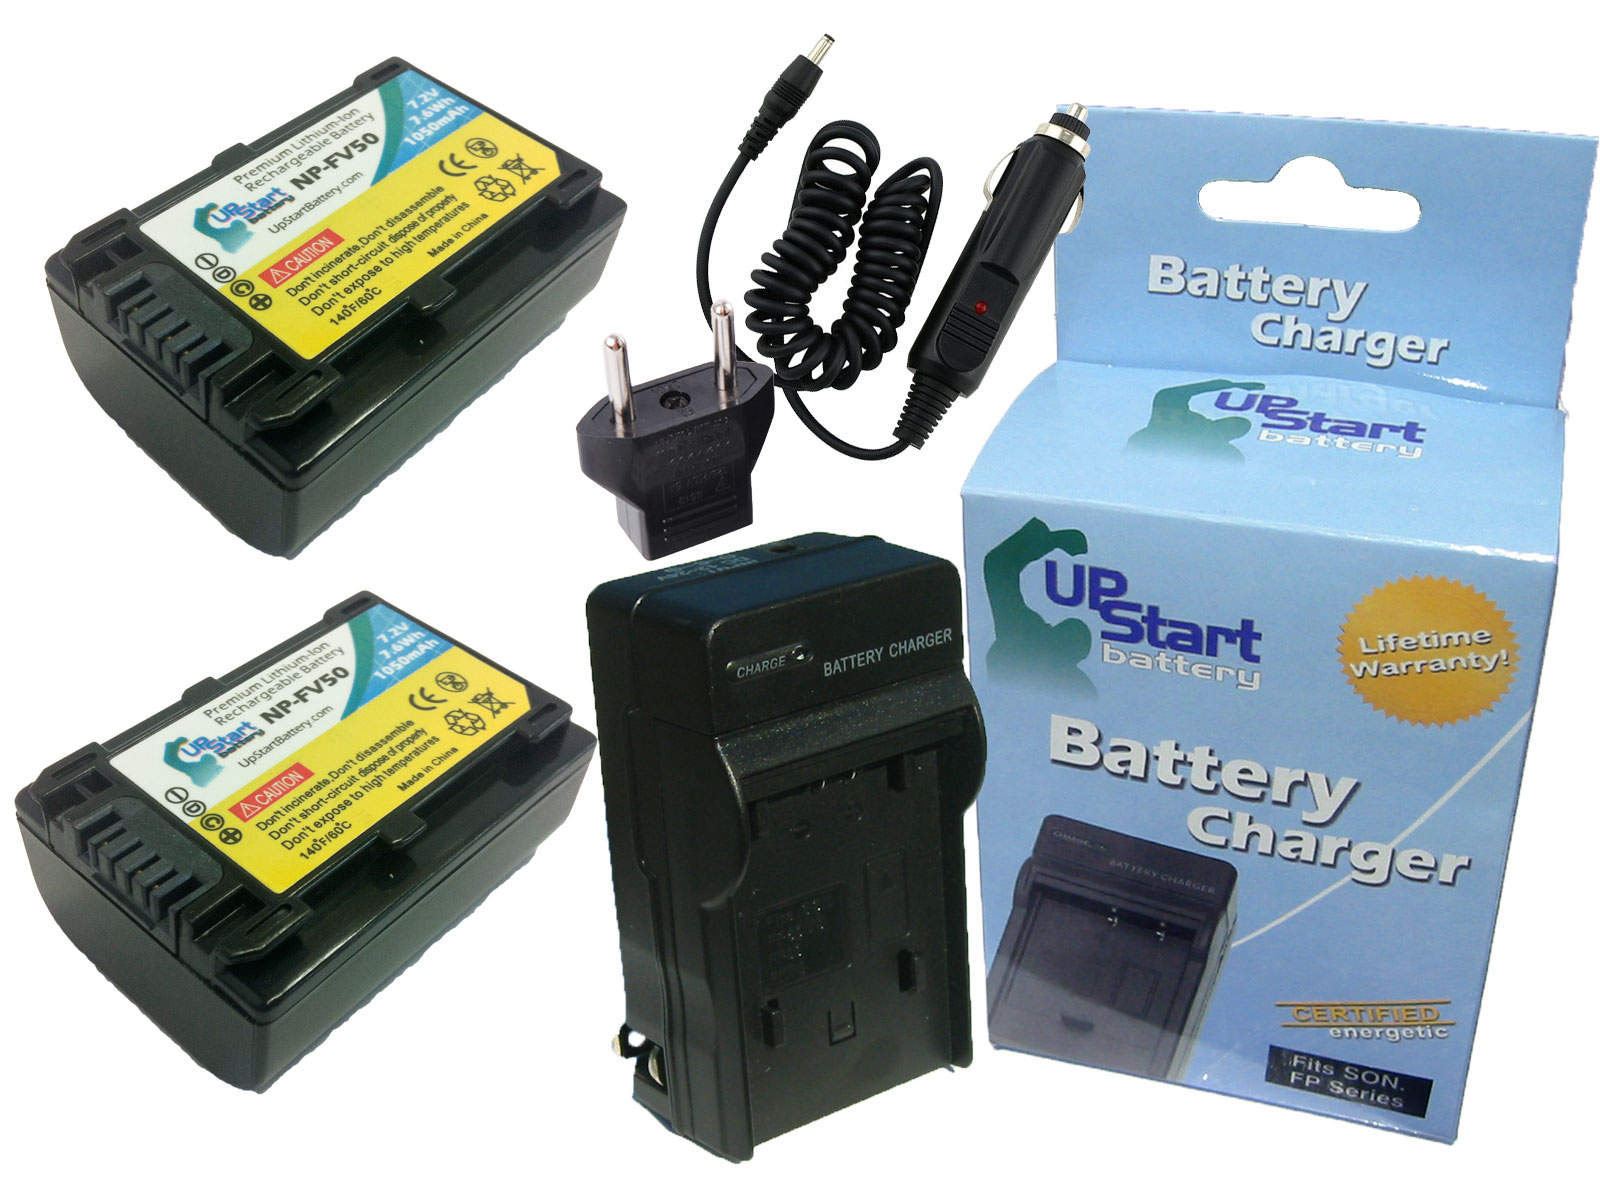 Charger Replacement for Samsung SBL-10A 1050 mAh Battpit Battpit New Digital Camera Battery